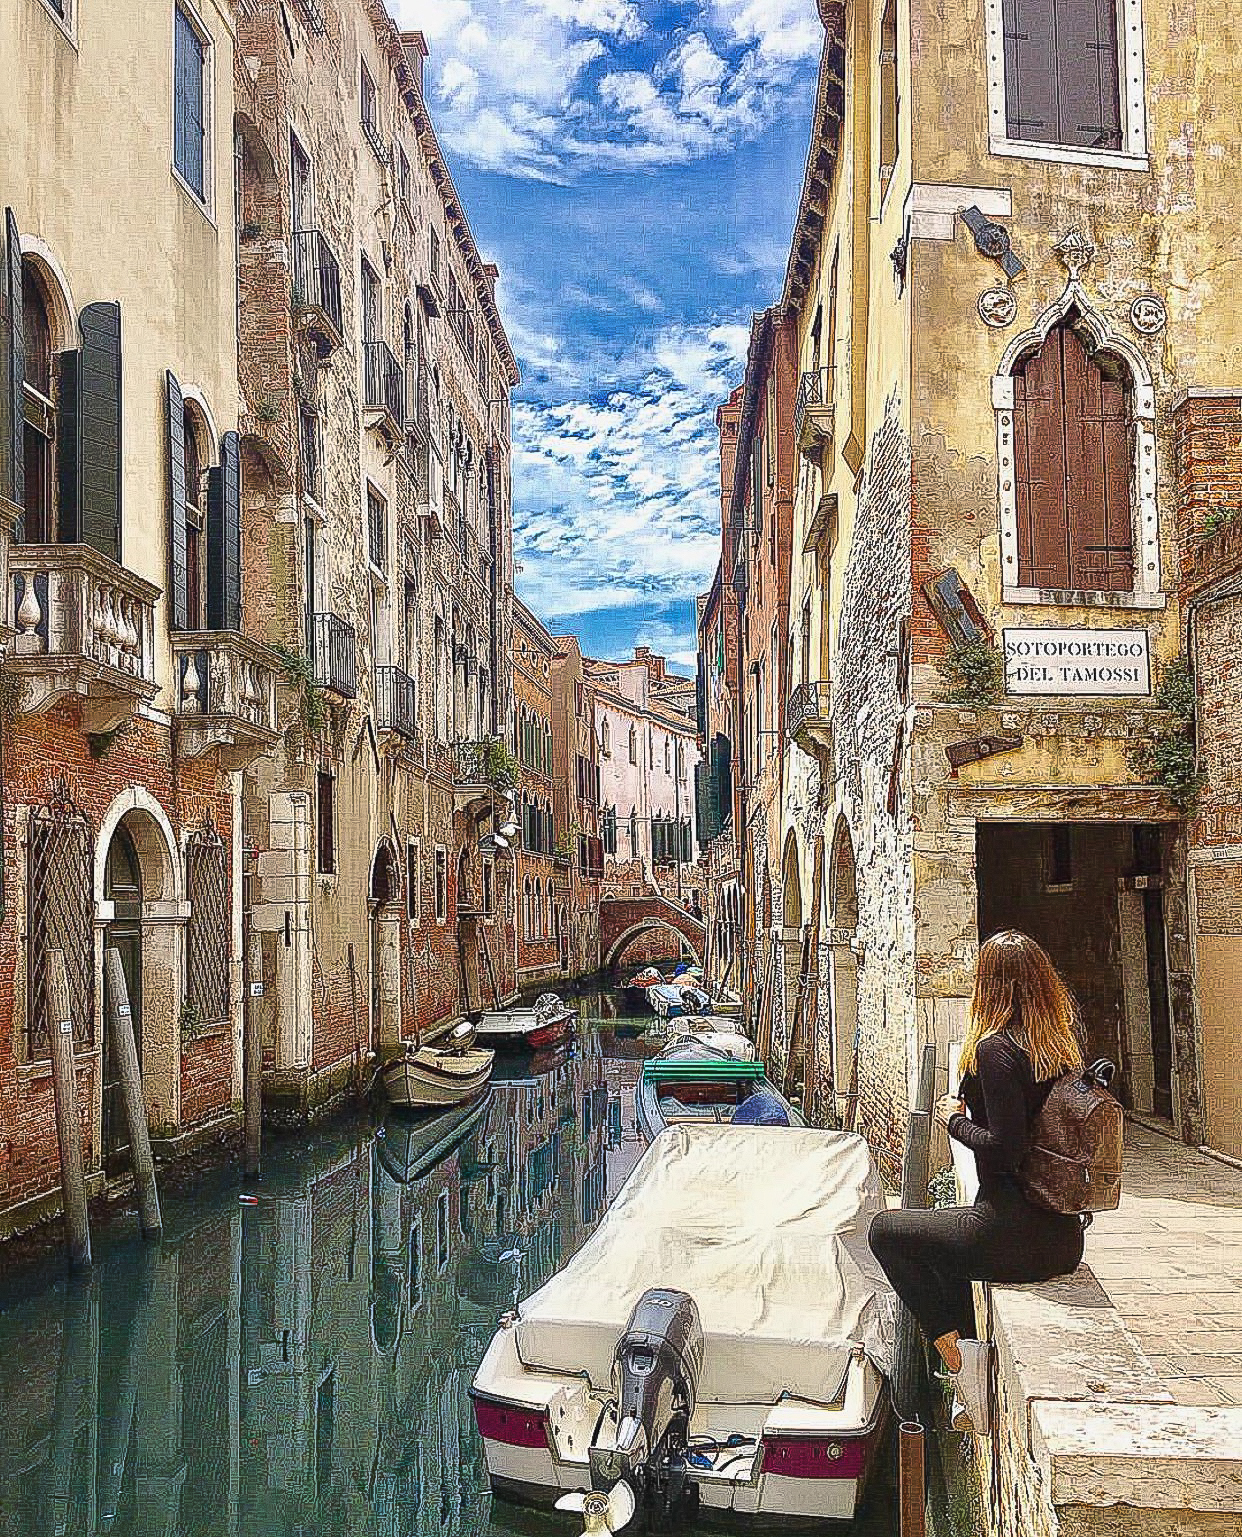 Beautiful Venice travels travel Photo by Linda Haggh.jpg